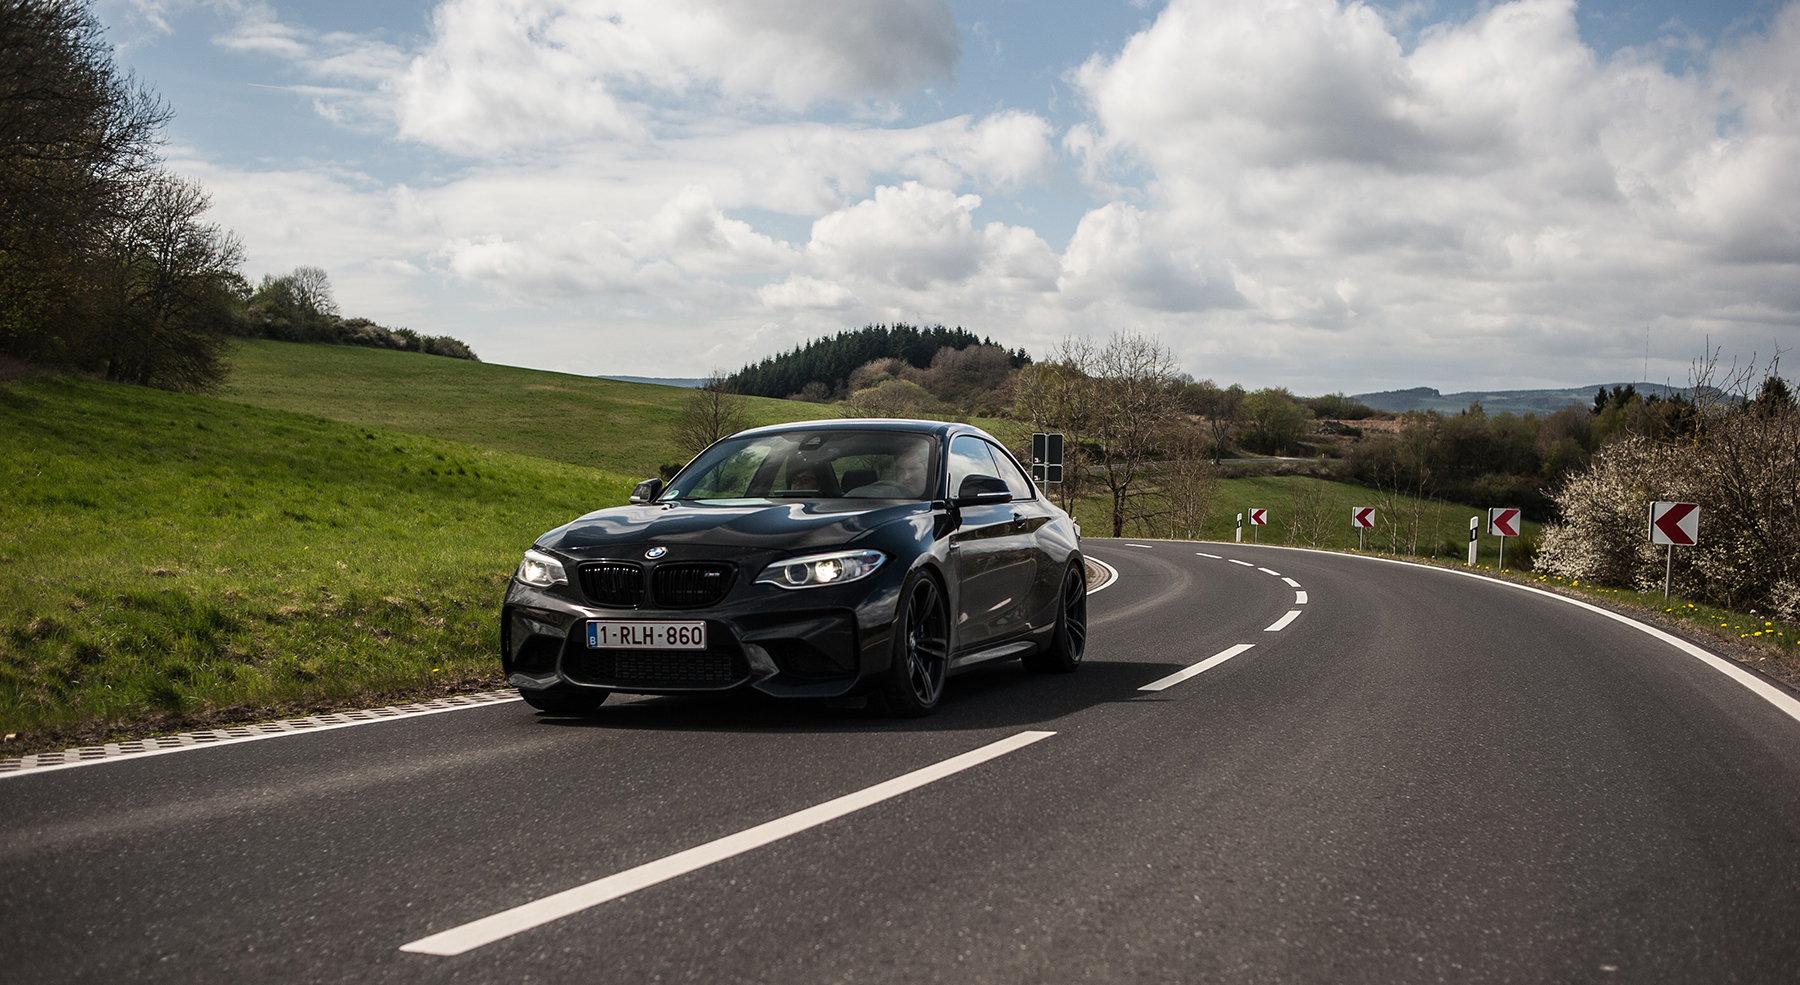 roadpursuit, winter roadtrip, Bmw M2